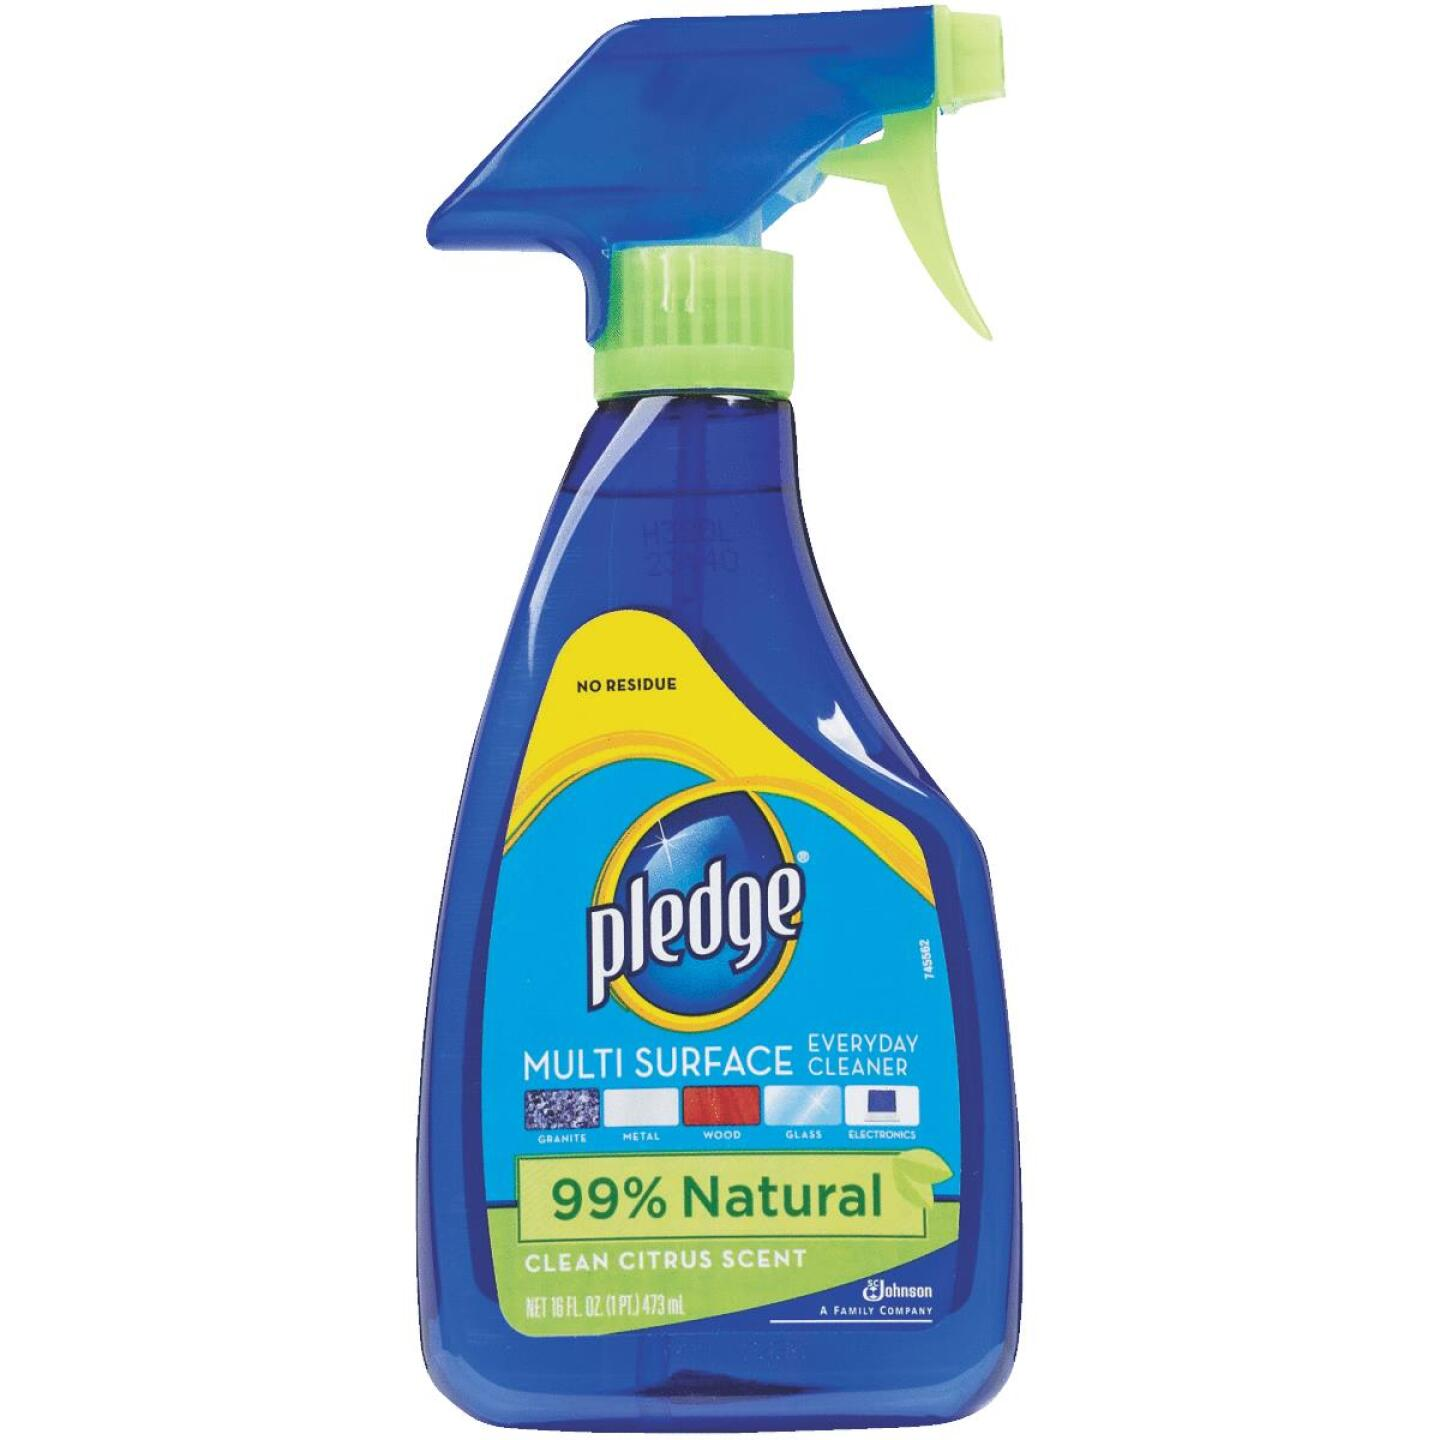 Pledge 16 Oz. Clean Citrus Multi Surface Everyday Cleaner Image 1